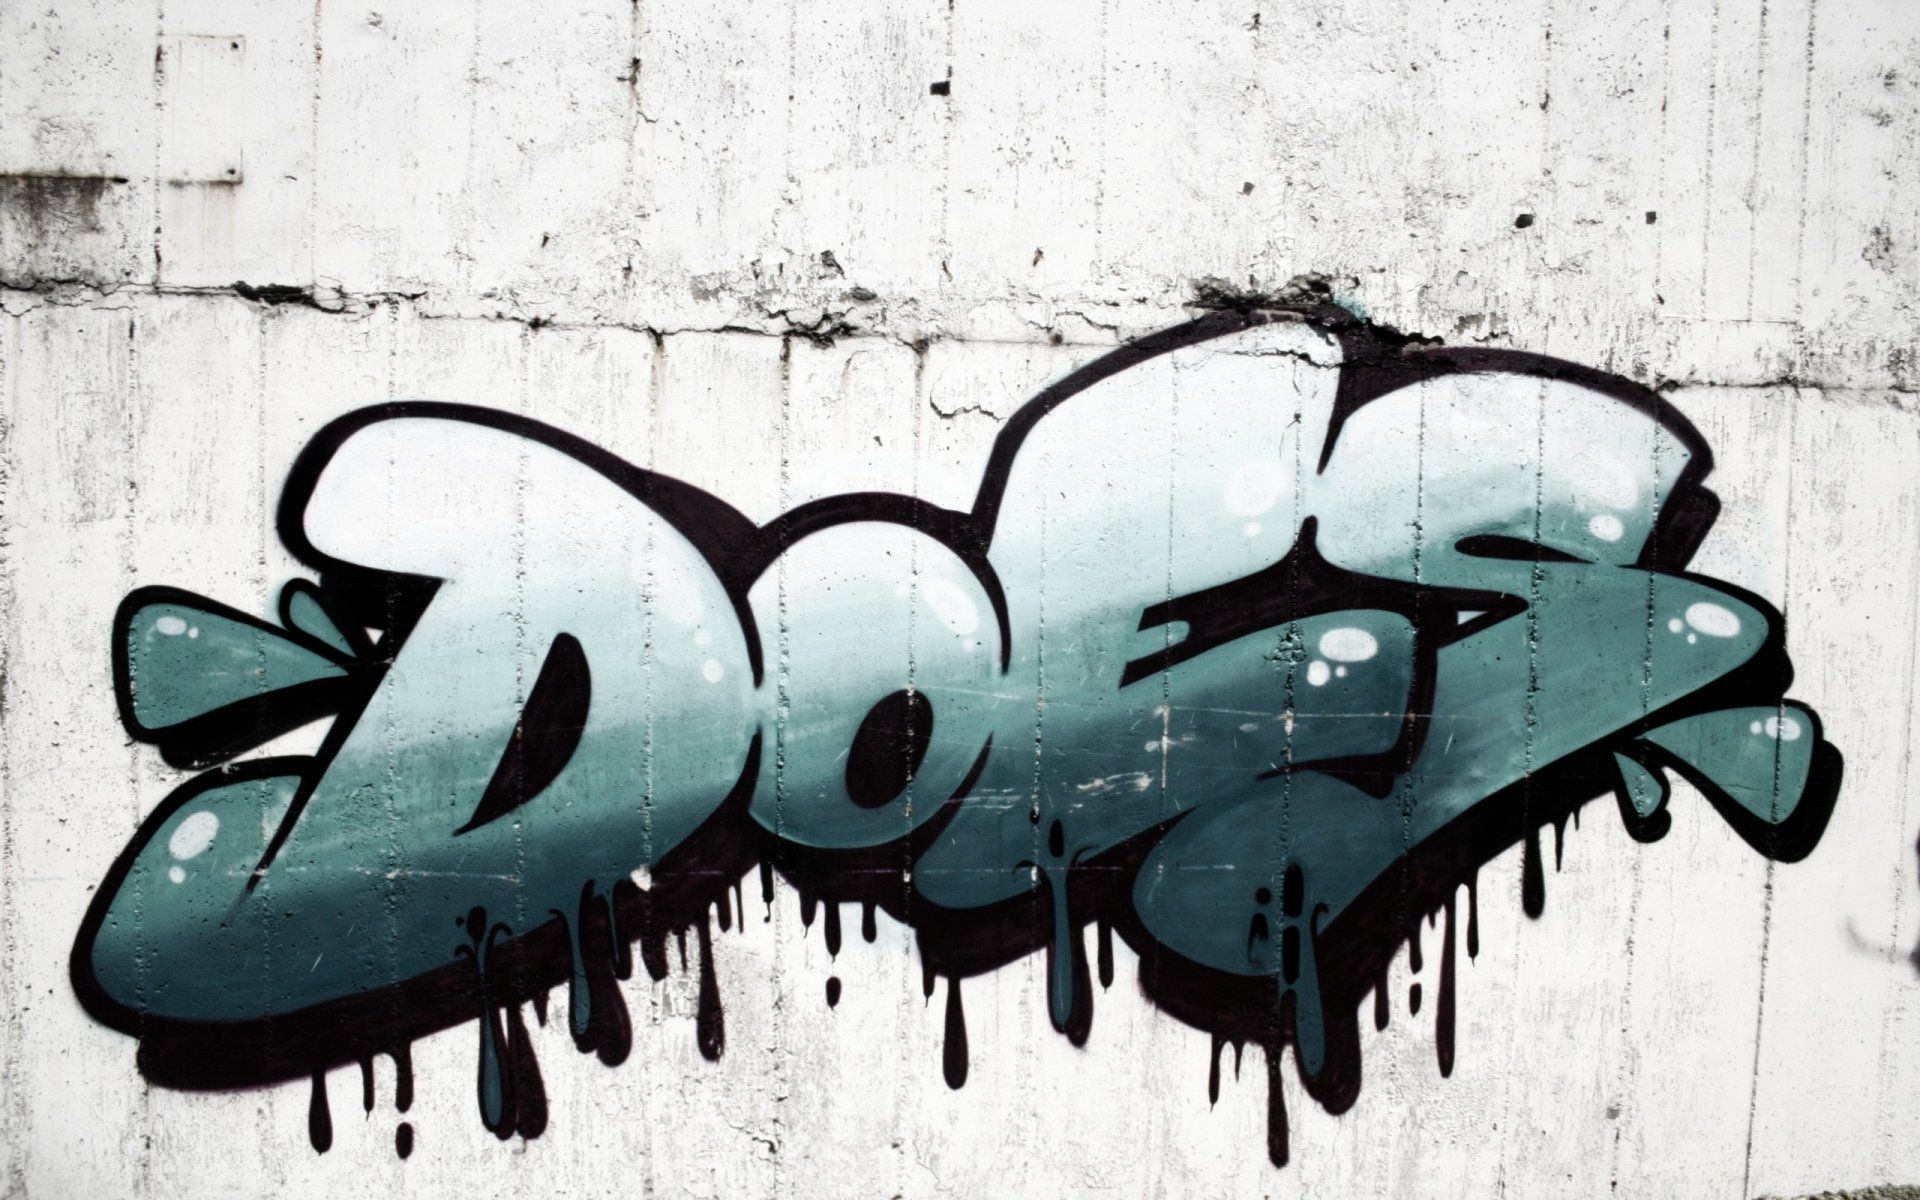 Graffiti style graffiti picture paint inscription word font wall style picture painting lettering word font wall does 2560x1600